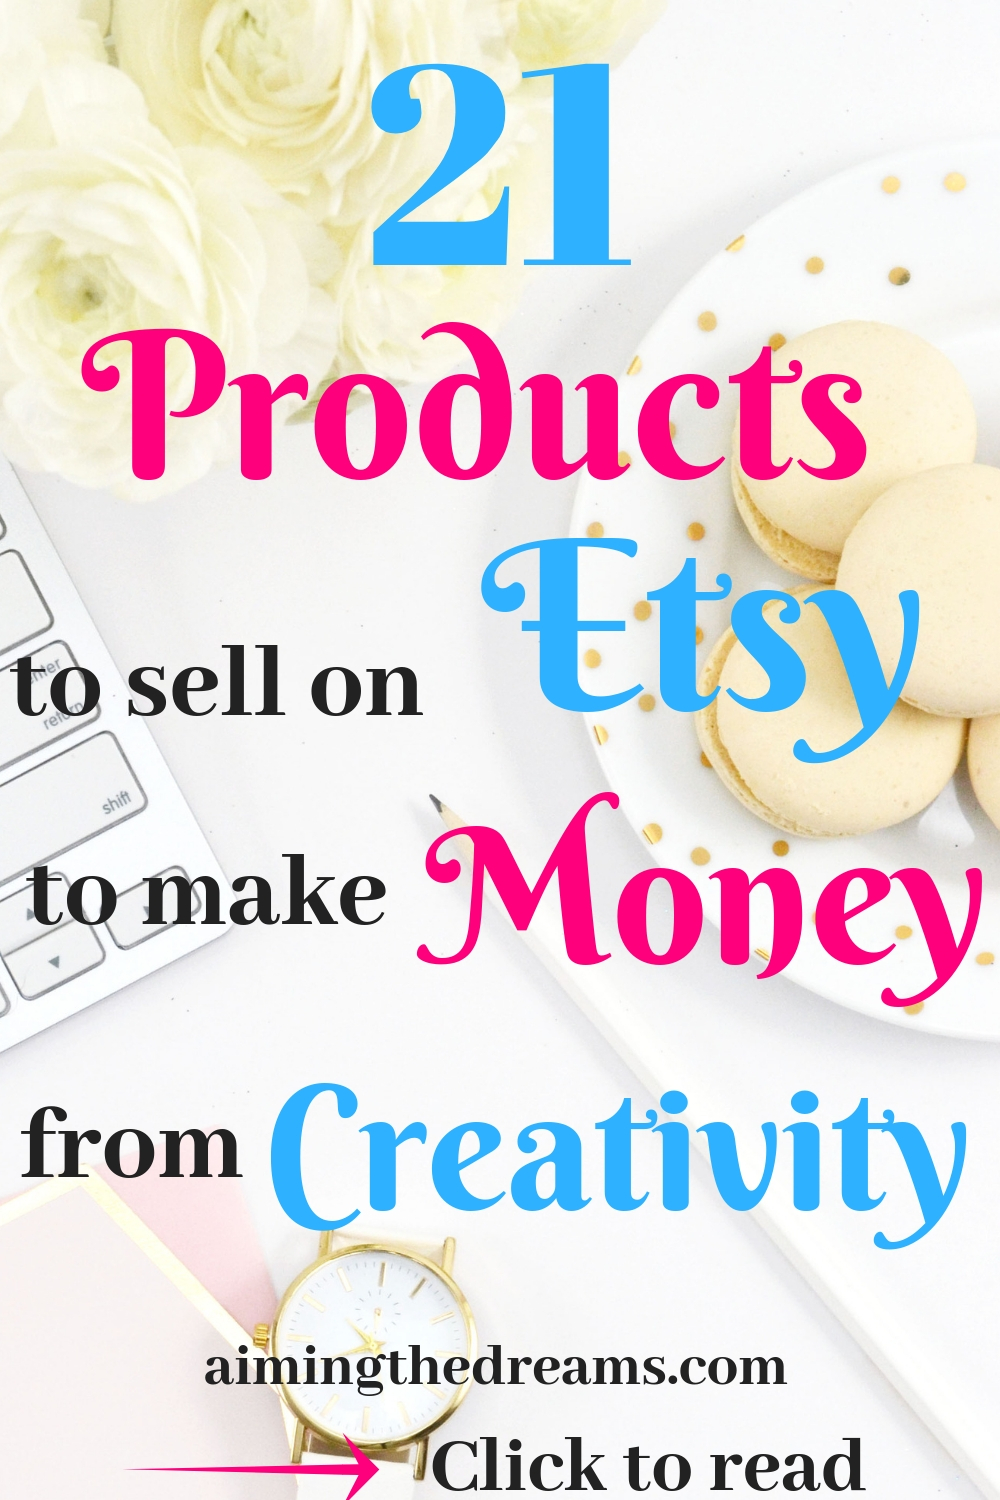 #Etsy #shop #ideas to begin your #creative business on Etsy. Click to read